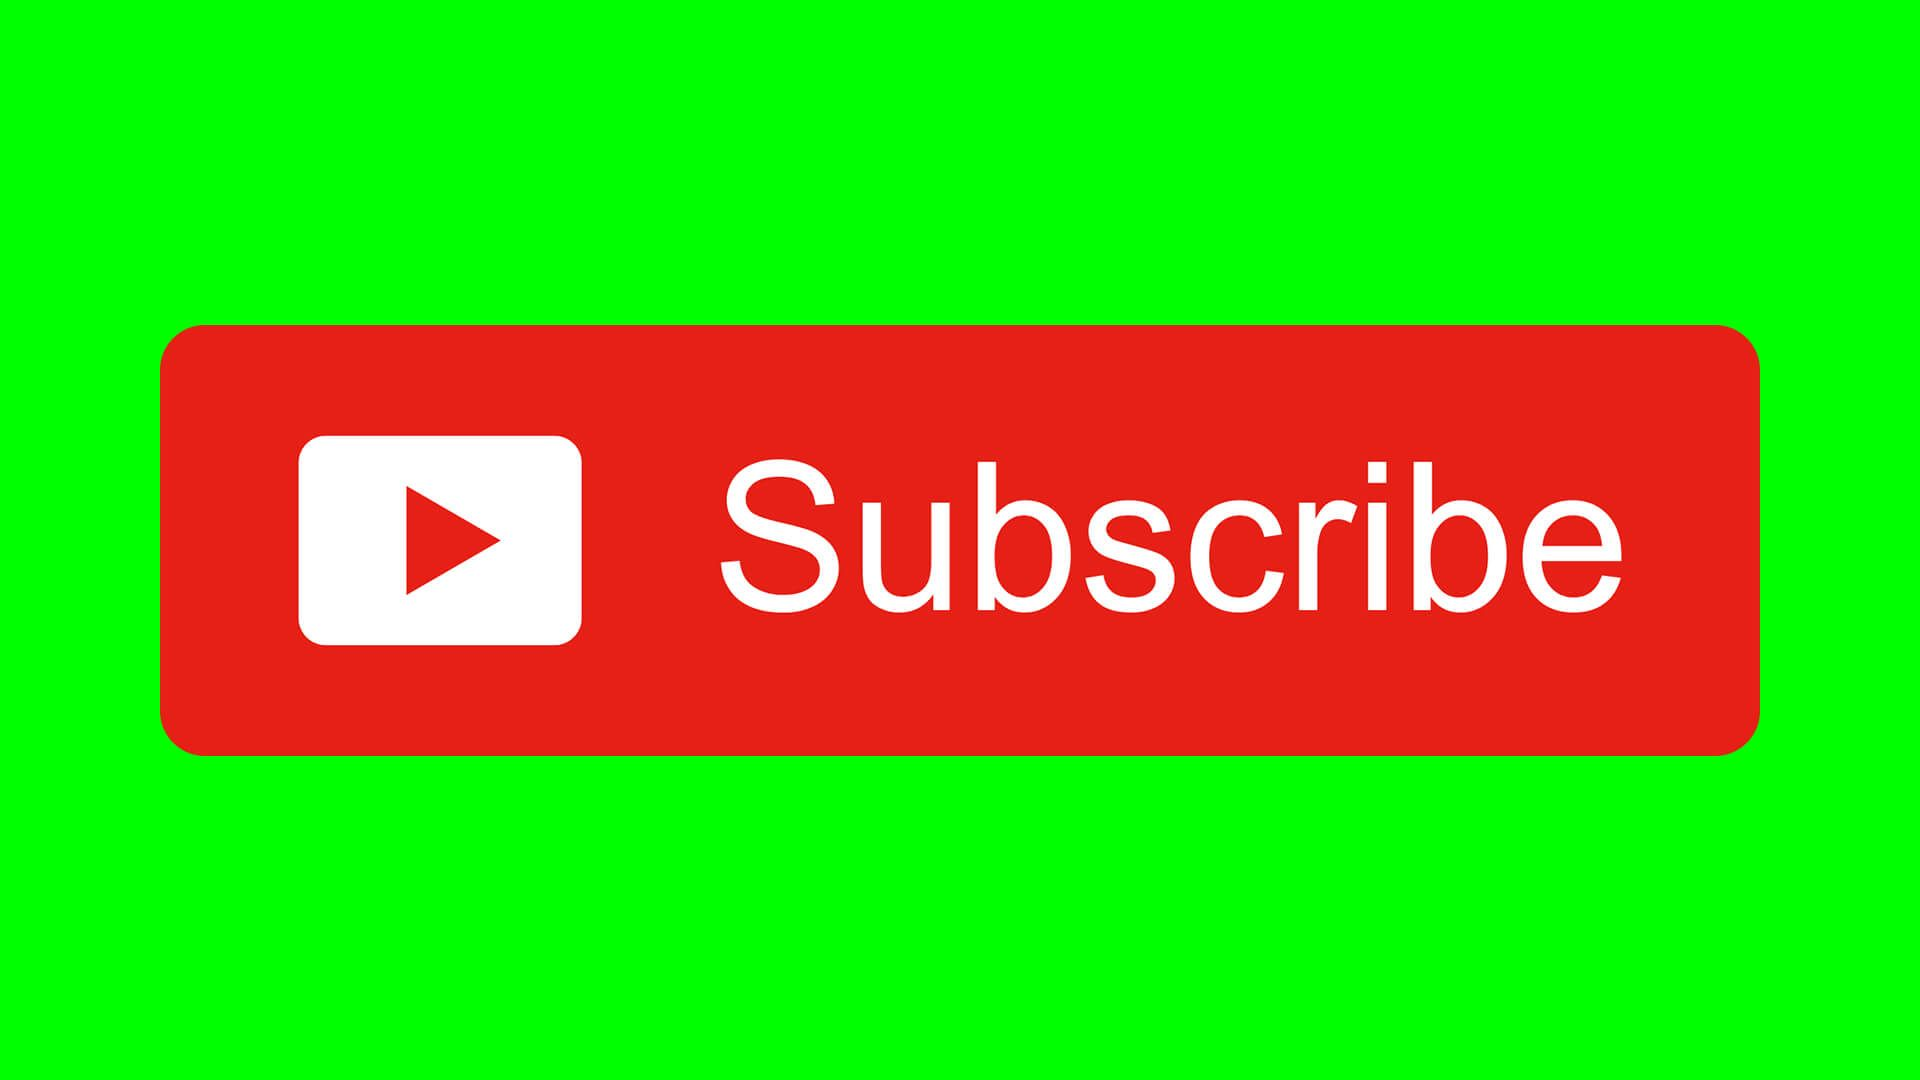 Free Youtube Subscribe Button Download Design Inspiration